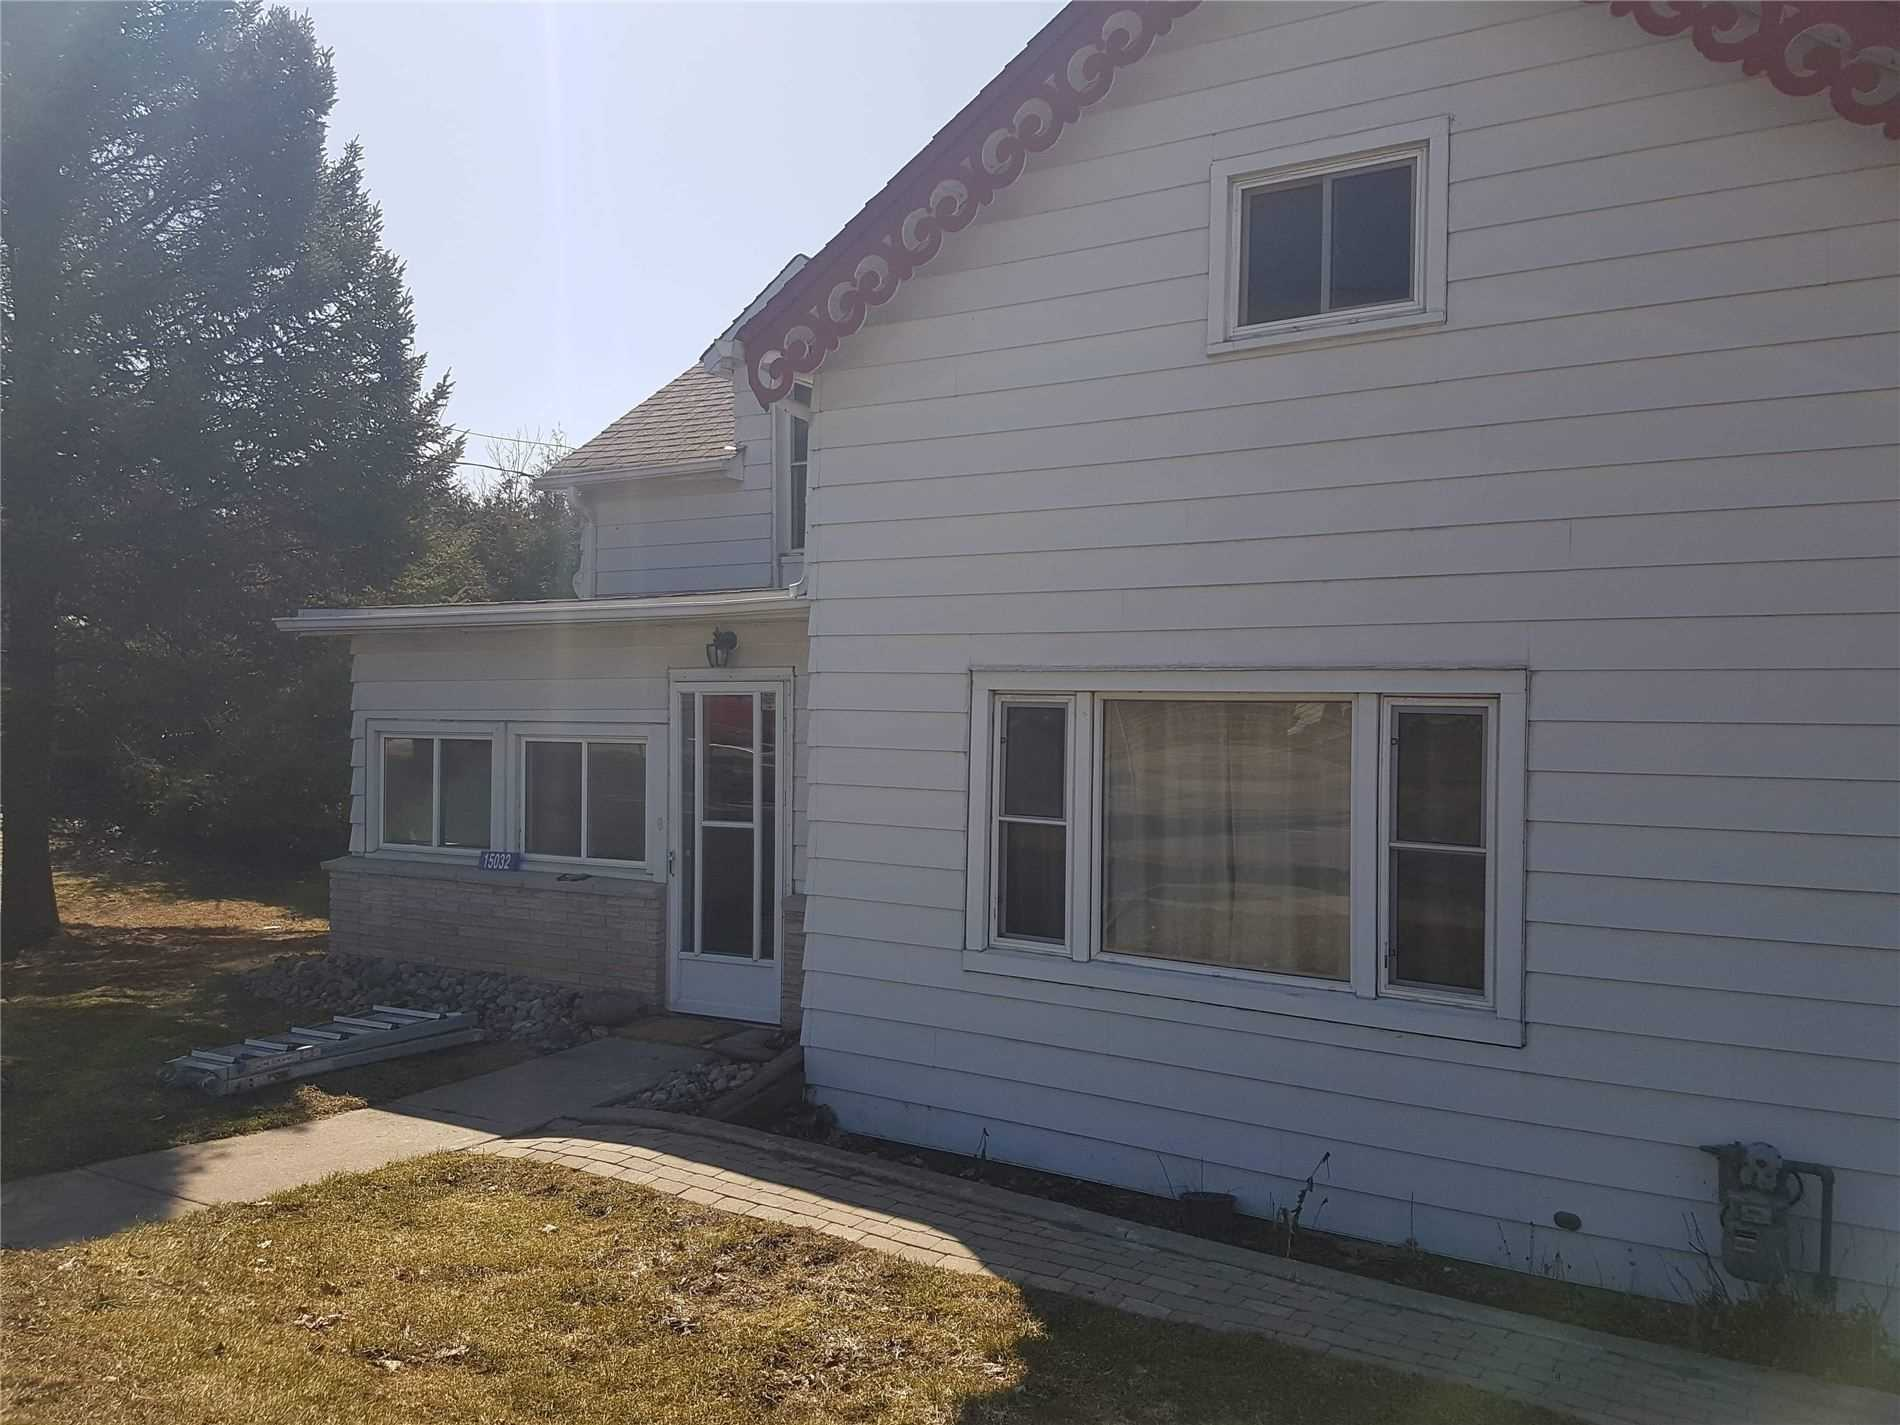 15032 Simcoe St, Scugog, Ontario L9L1J6, 4 Bedrooms Bedrooms, ,2 BathroomsBathrooms,Detached,For Lease,Simcoe,E5163804